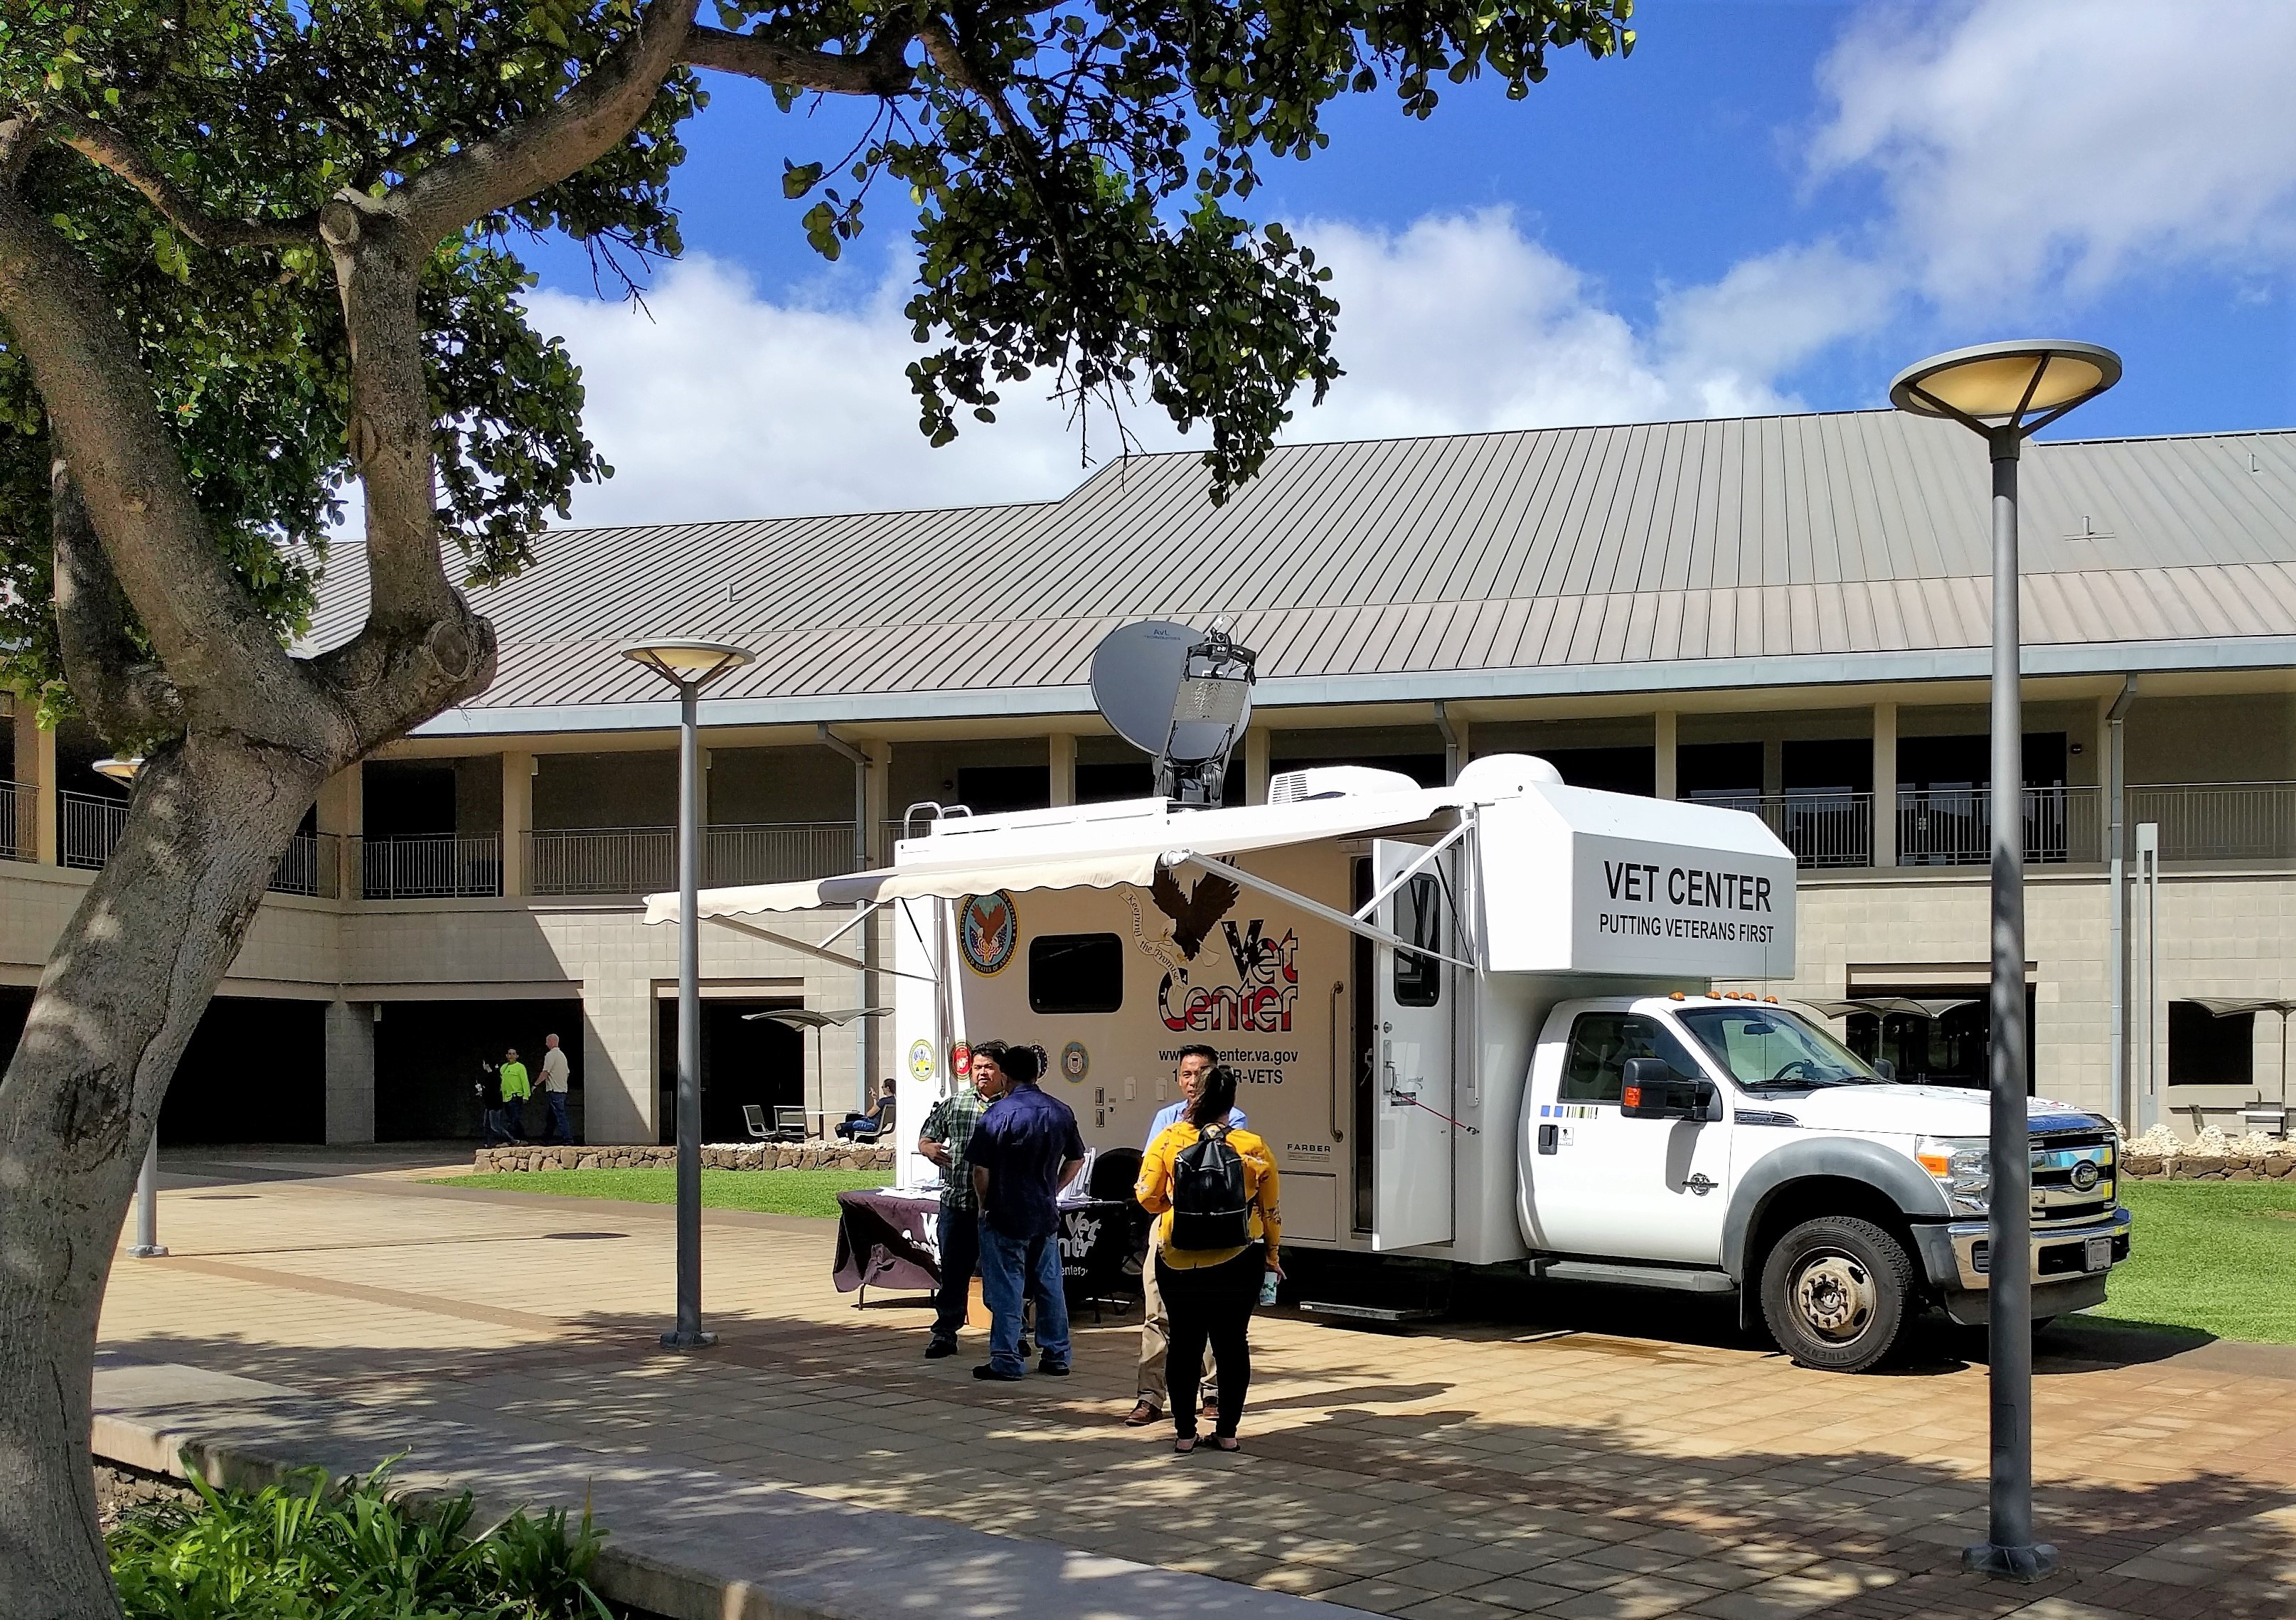 Picture of Mobile Vet Center parked at Campus Center during a Nov. 20 visit